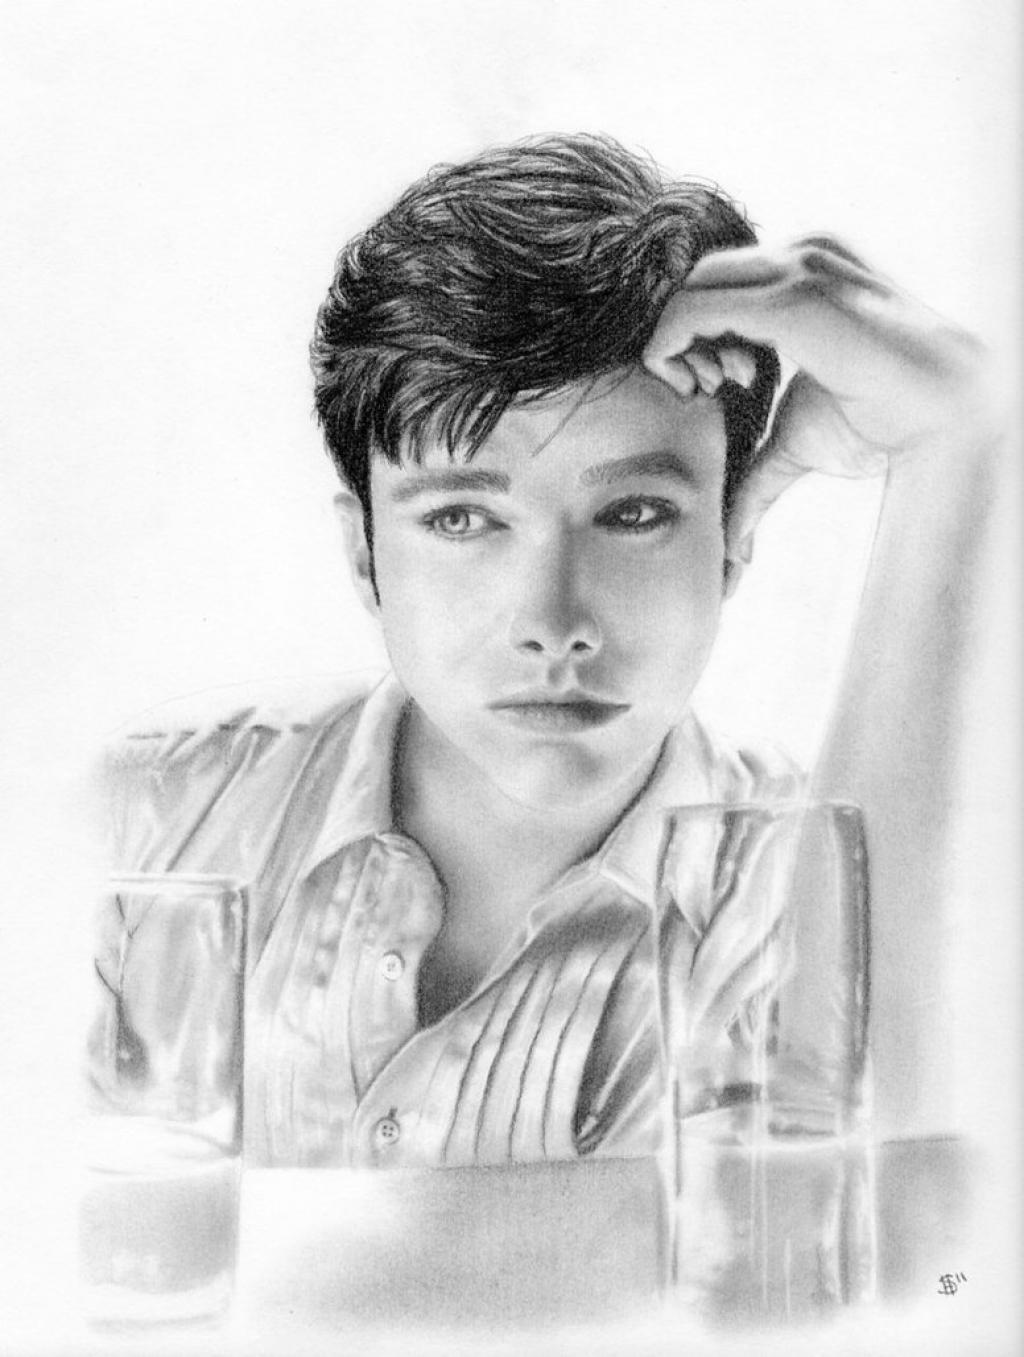 Chris Drawings & paintings Fanarts Porcelain__by_int...-d37bx2v-31f61ff